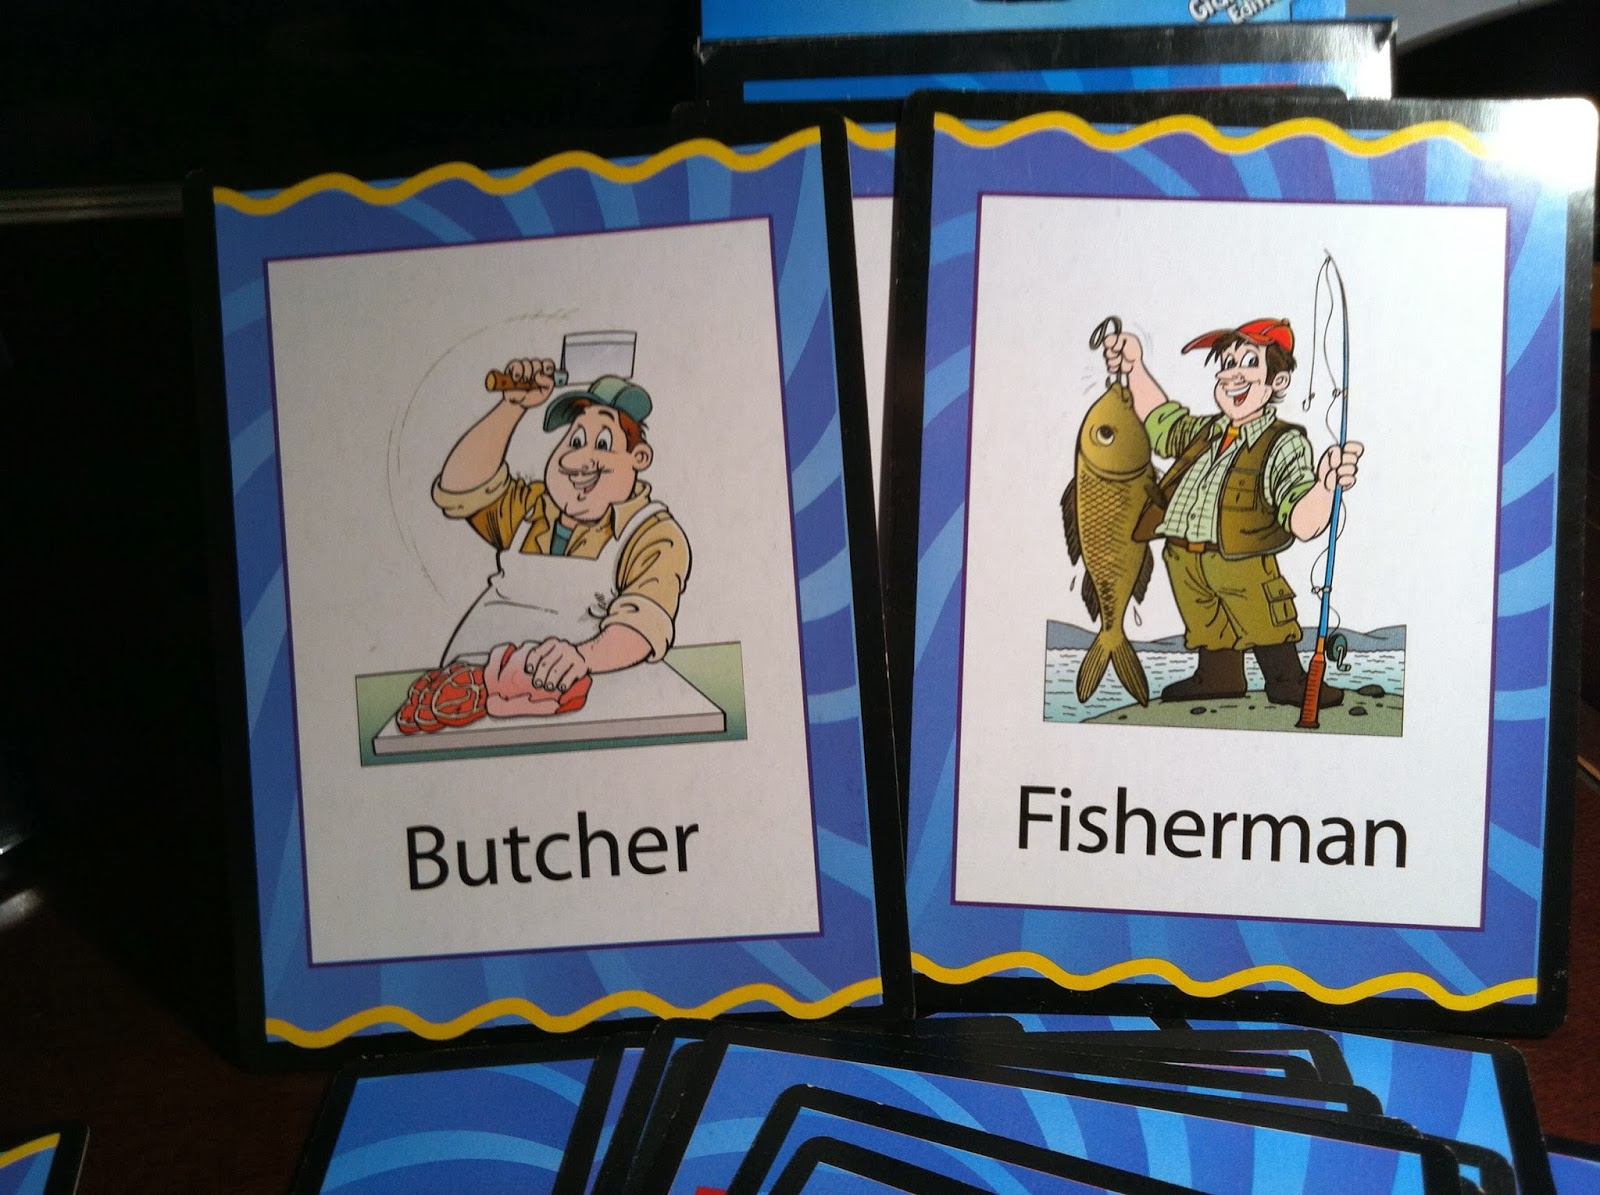 Butcher or Fisherman